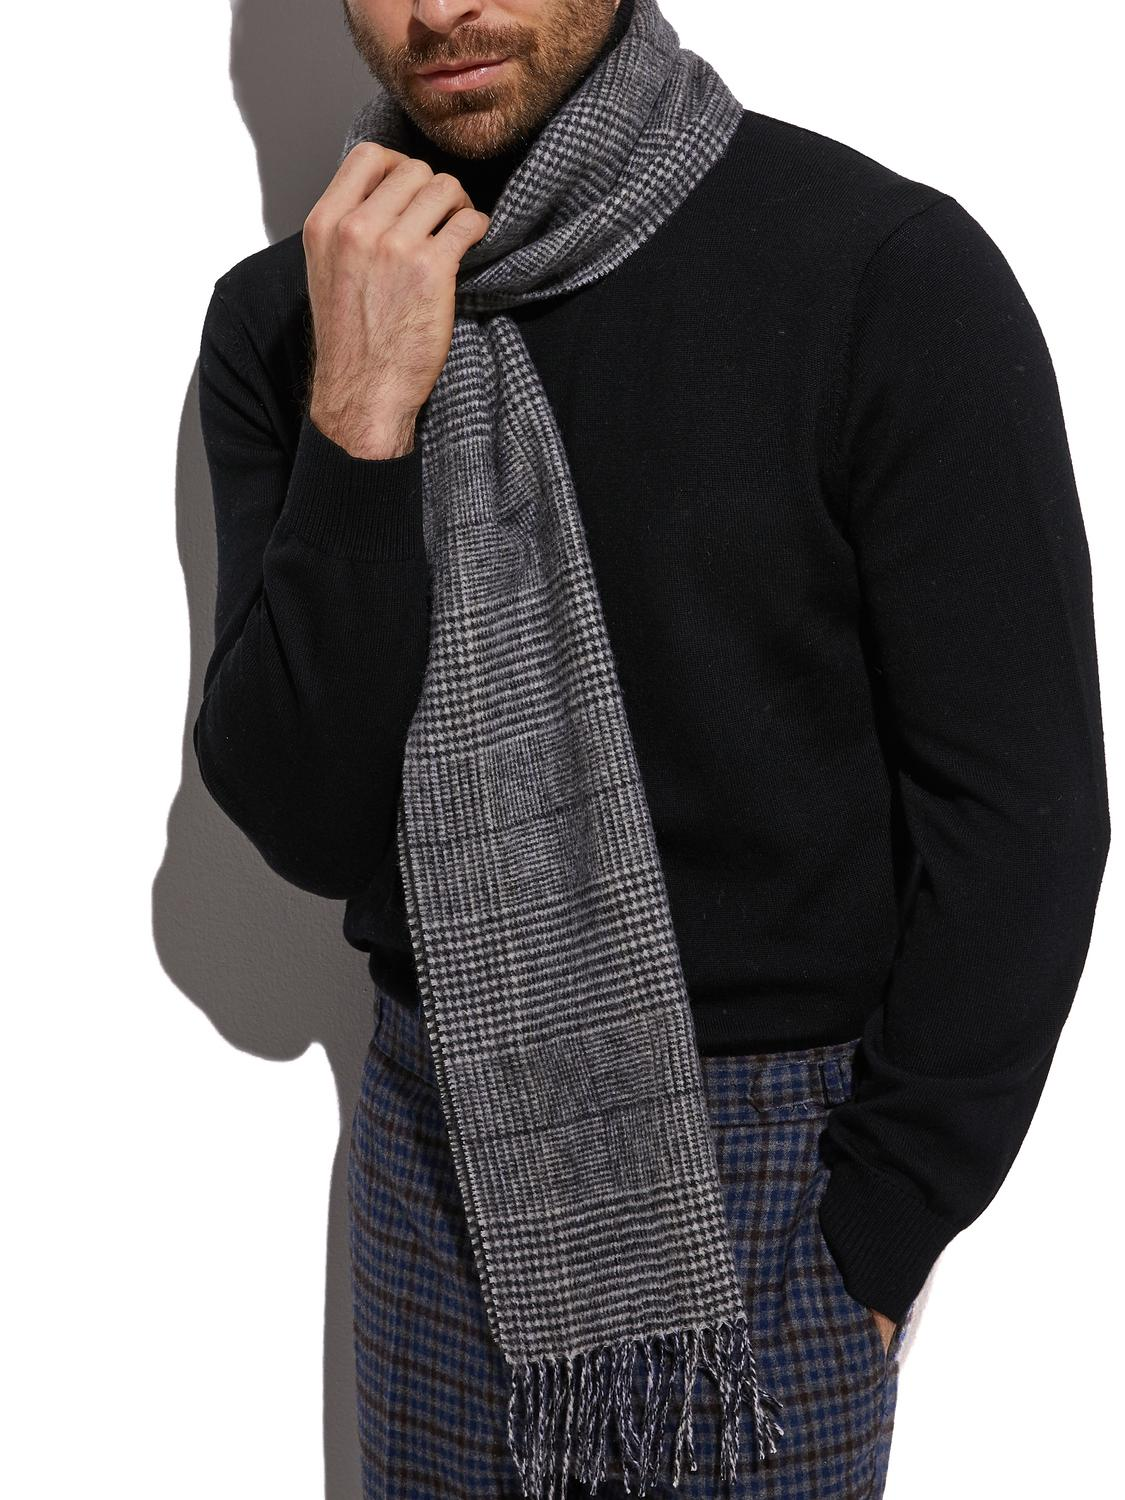 2020 Highly Selected 100% Wool Dark Grey Glen Check Scarf , Warm Winter Men Scarf Glen Plaid Comfortable Material Y200110